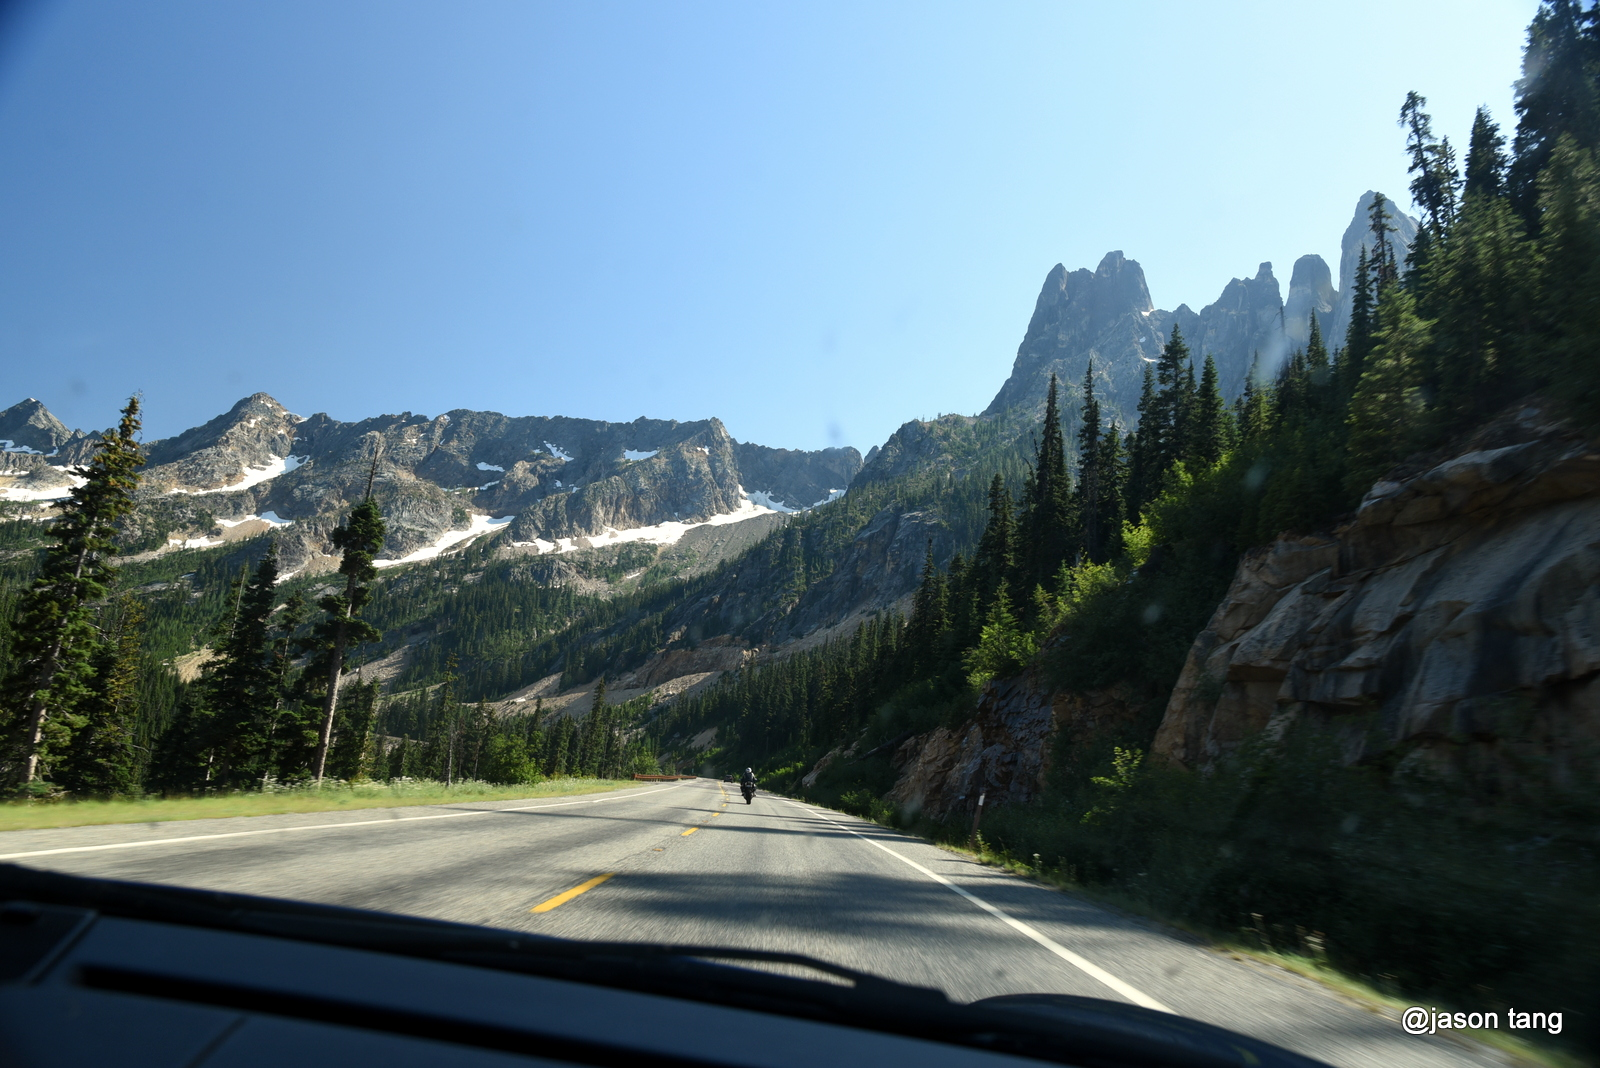 Summer Drive over Highway 20_43438131091_o.jpg